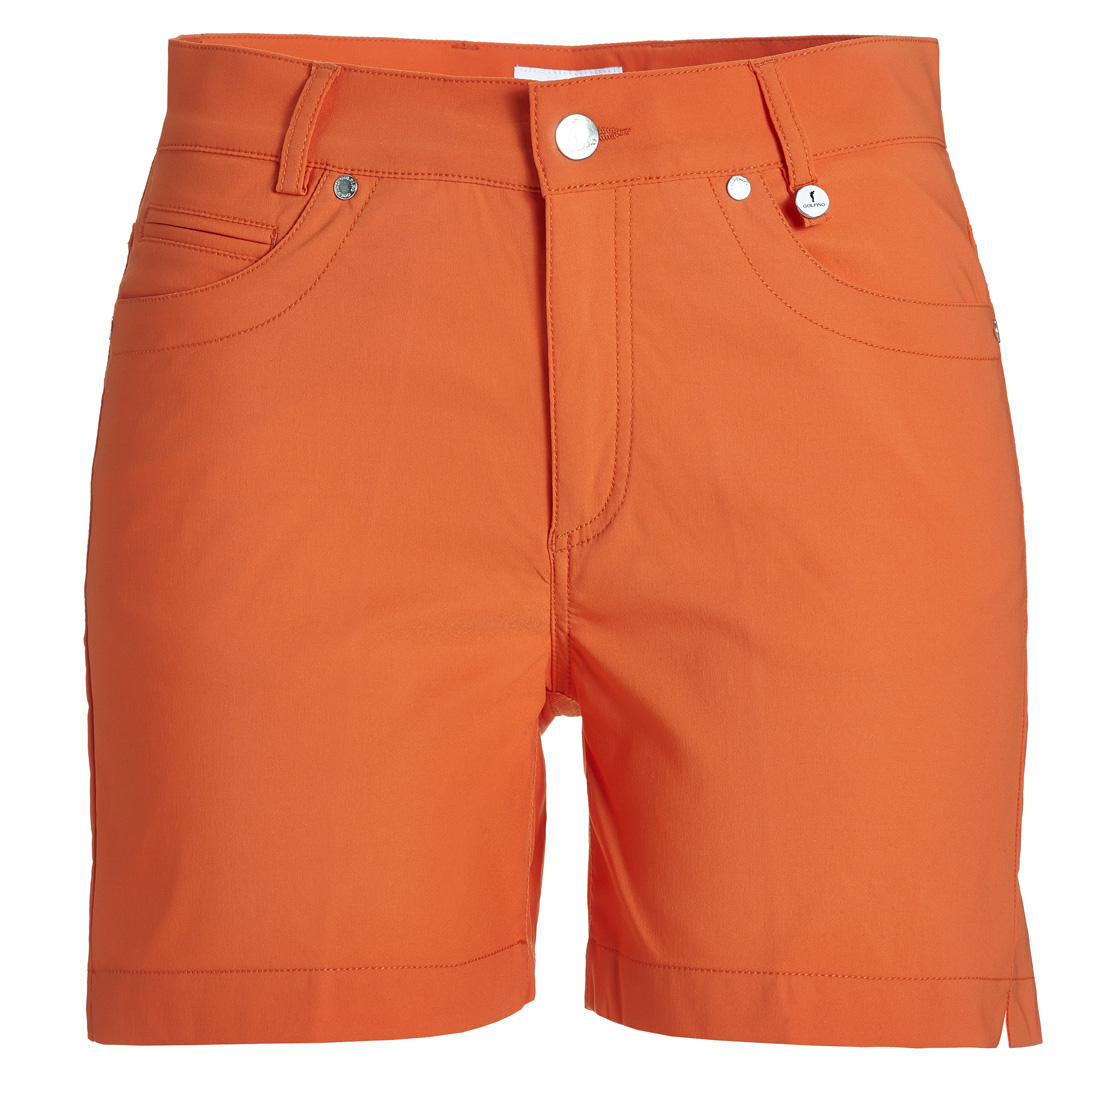 5-Pocket Techno Stretch Kurzarm s Tangerine